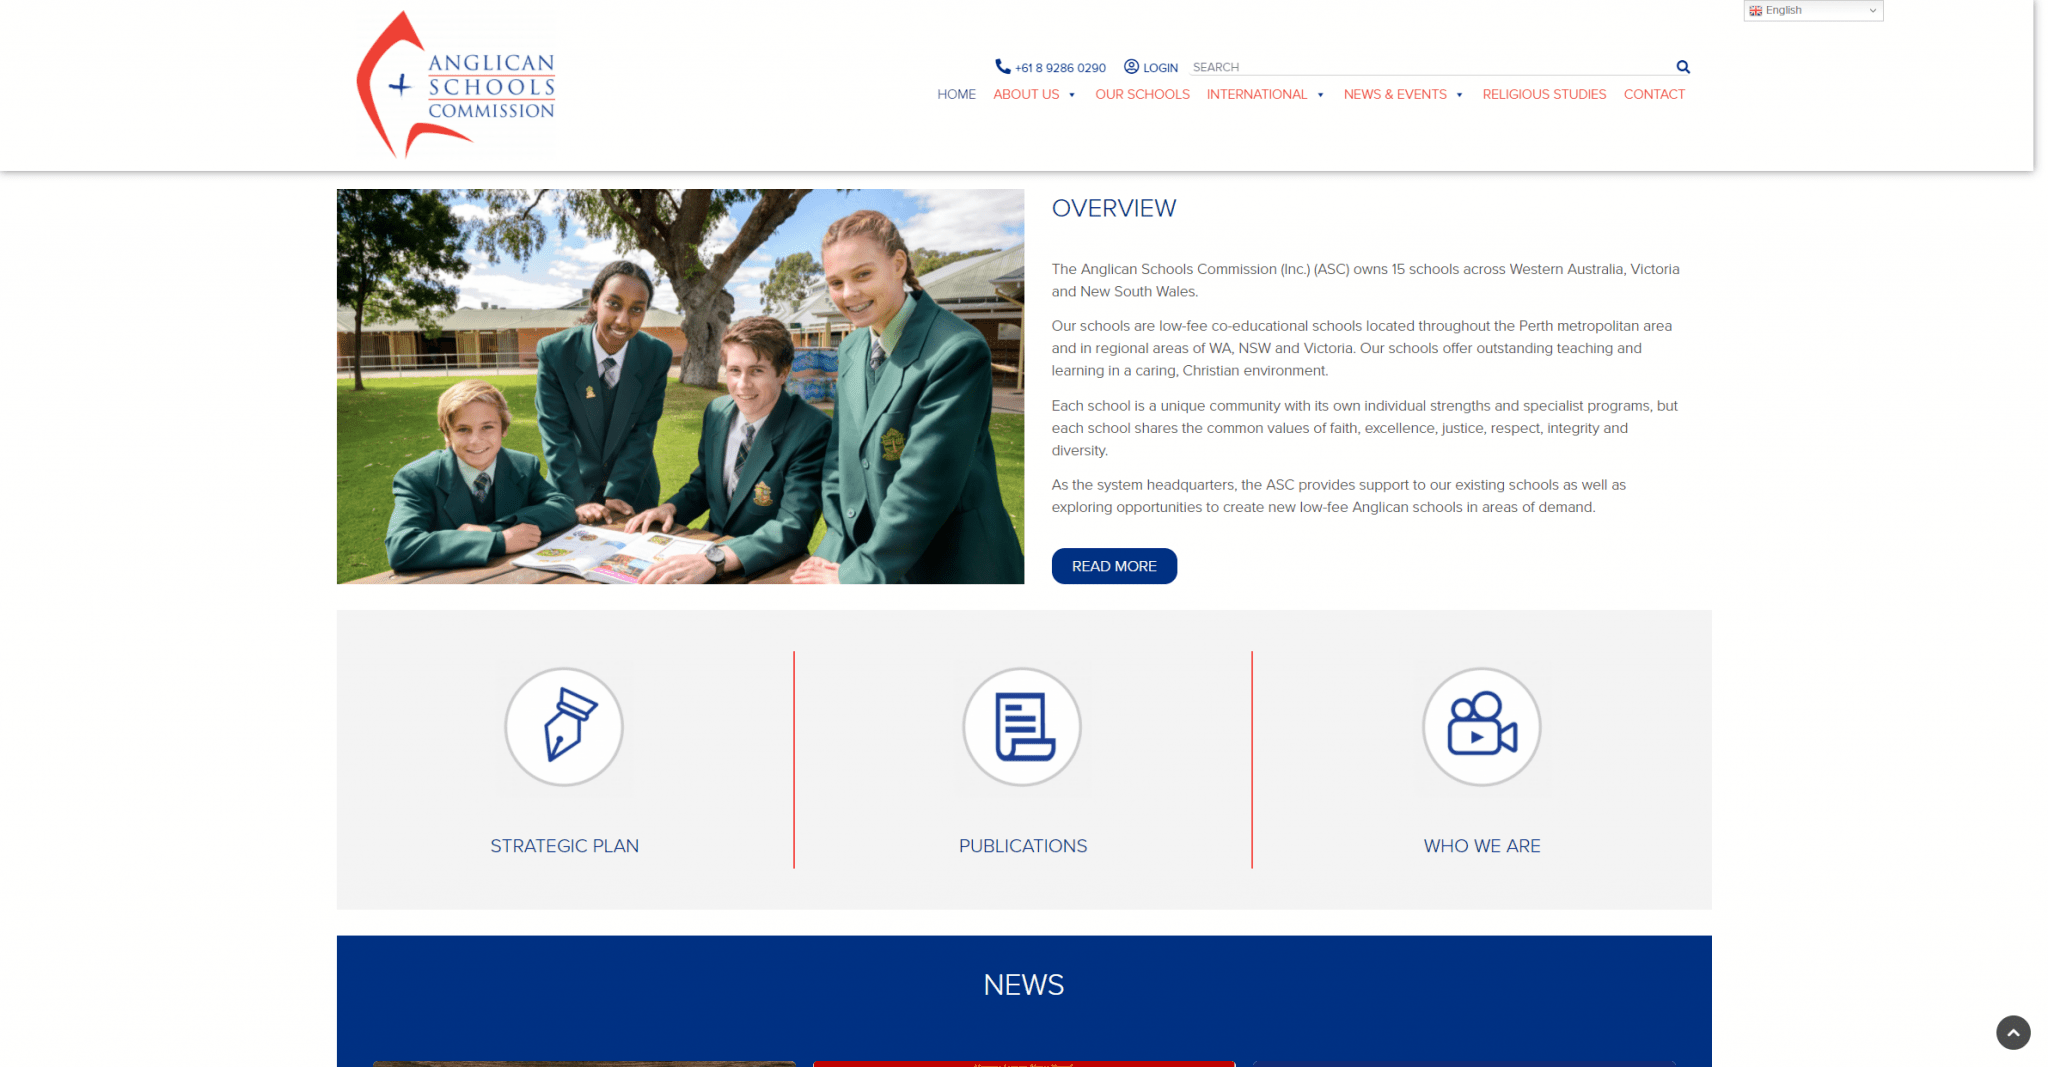 https___www.ascschools.edu.au_ More Than Just Centres for Learning – Anglican Schools Commission_002